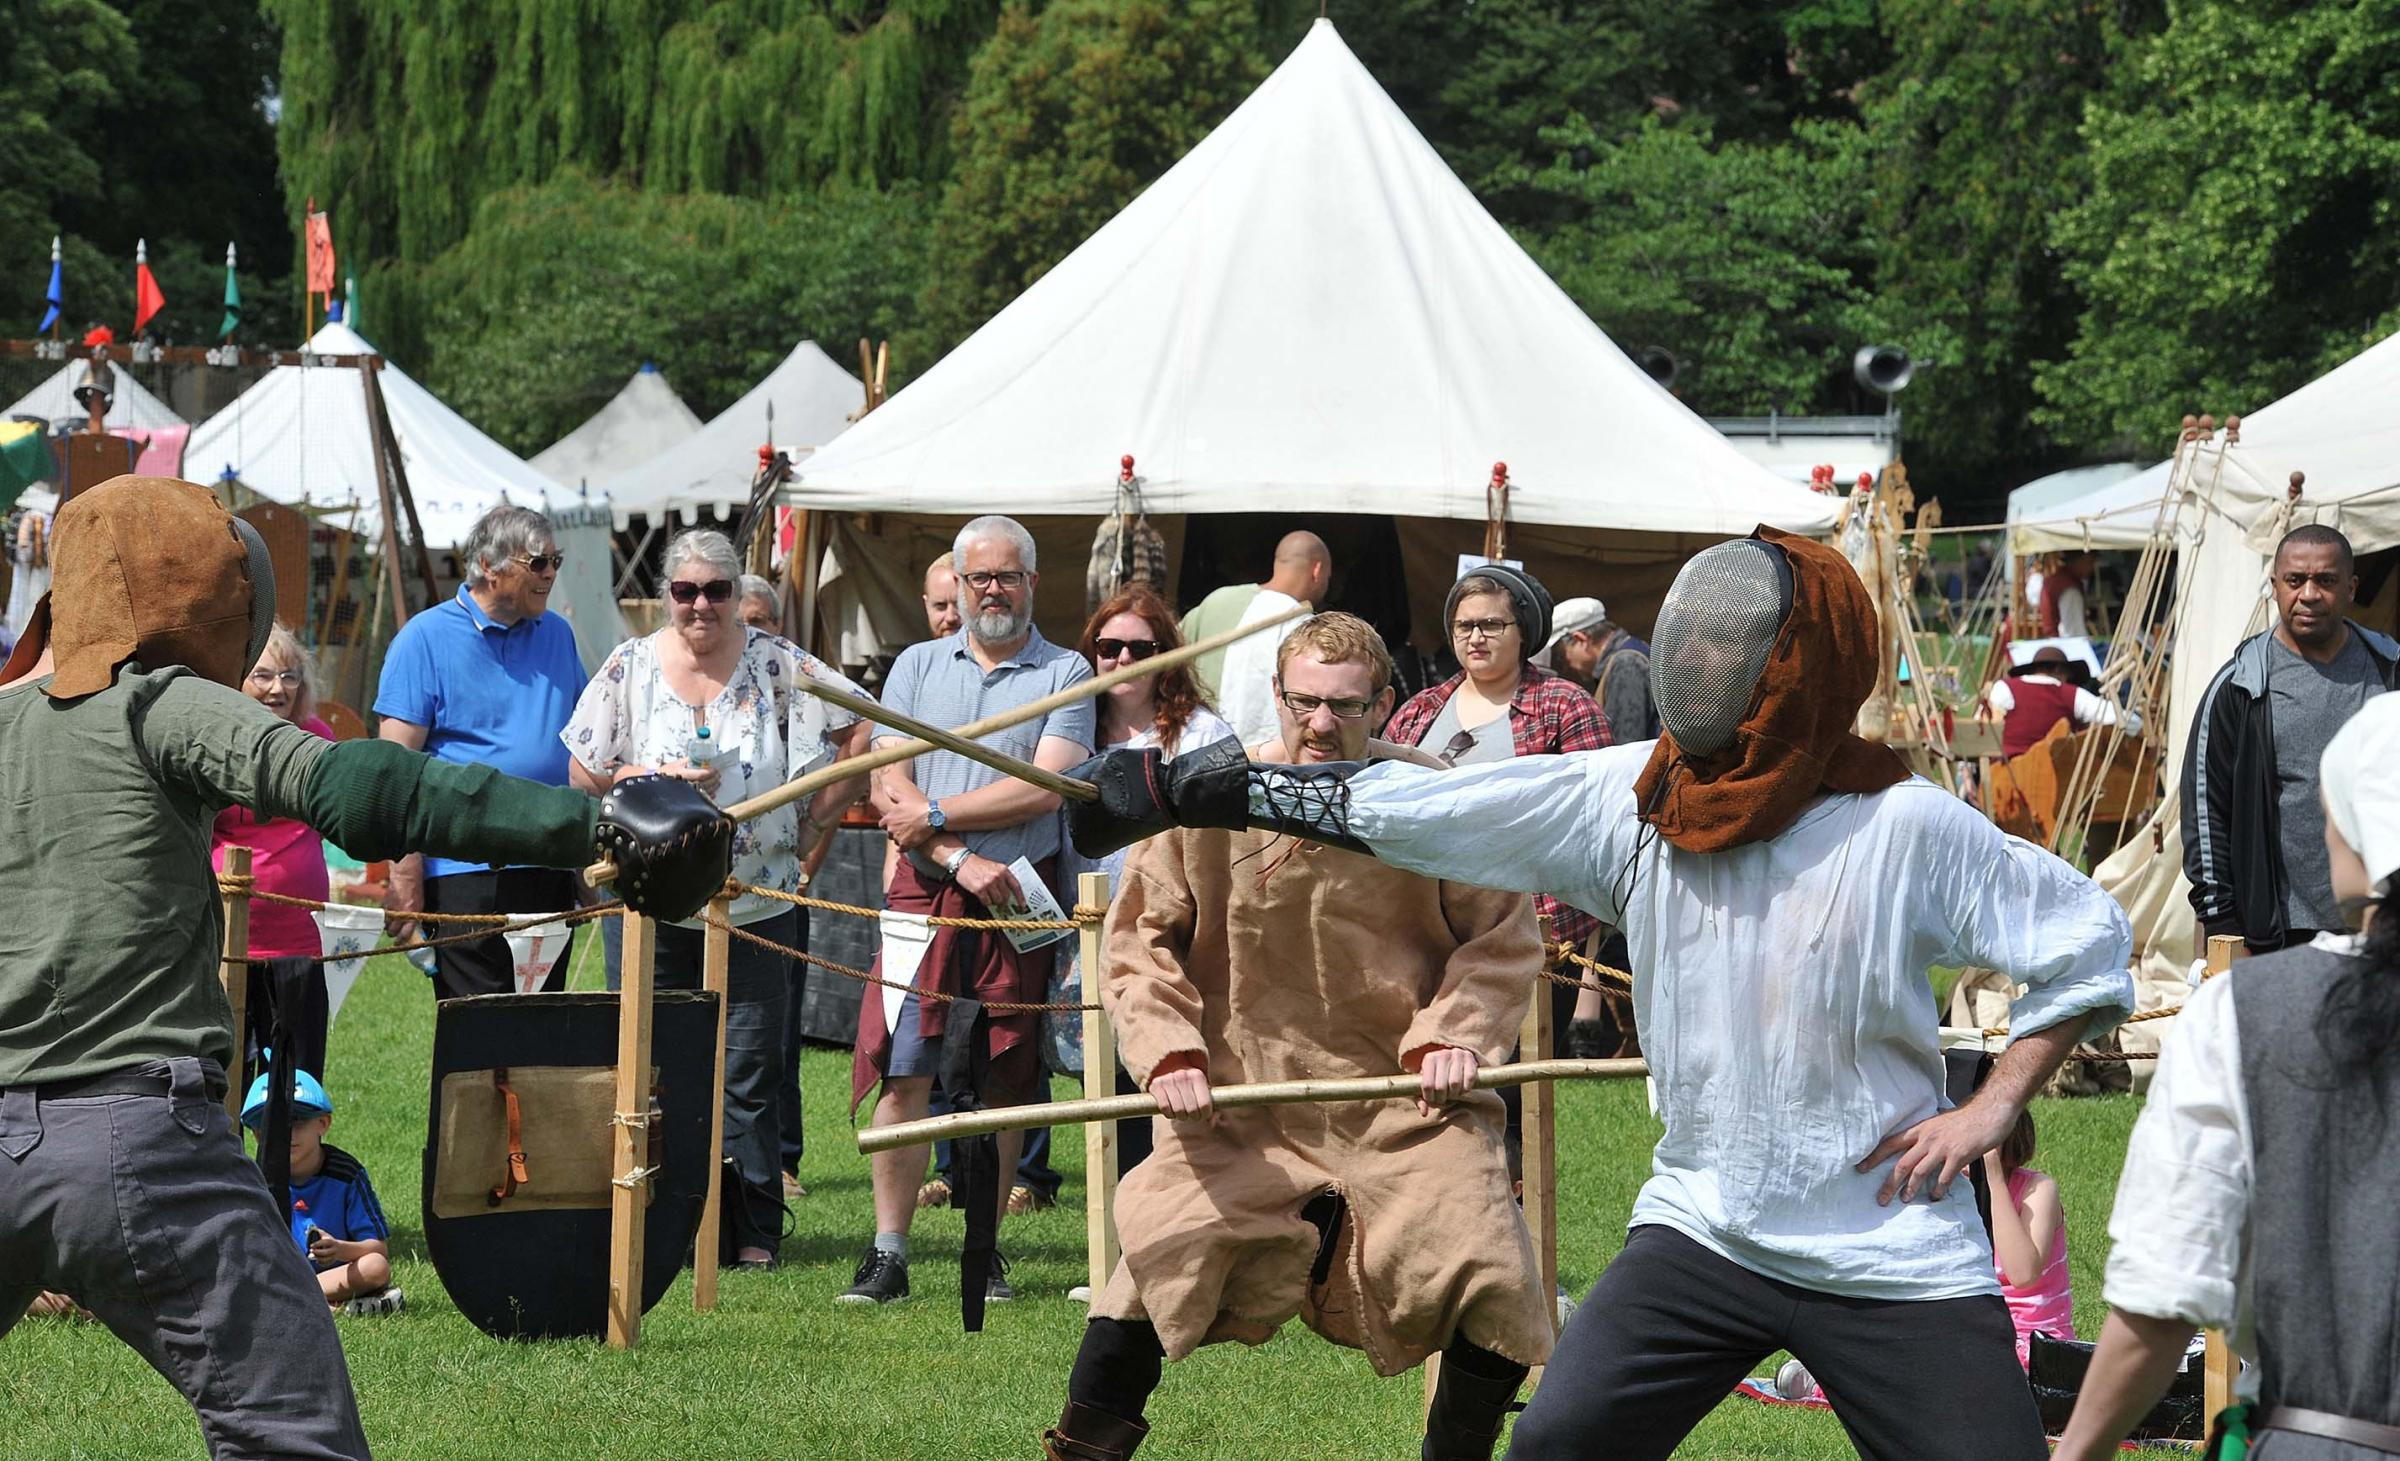 On guard - Colchester's Medieval Festival